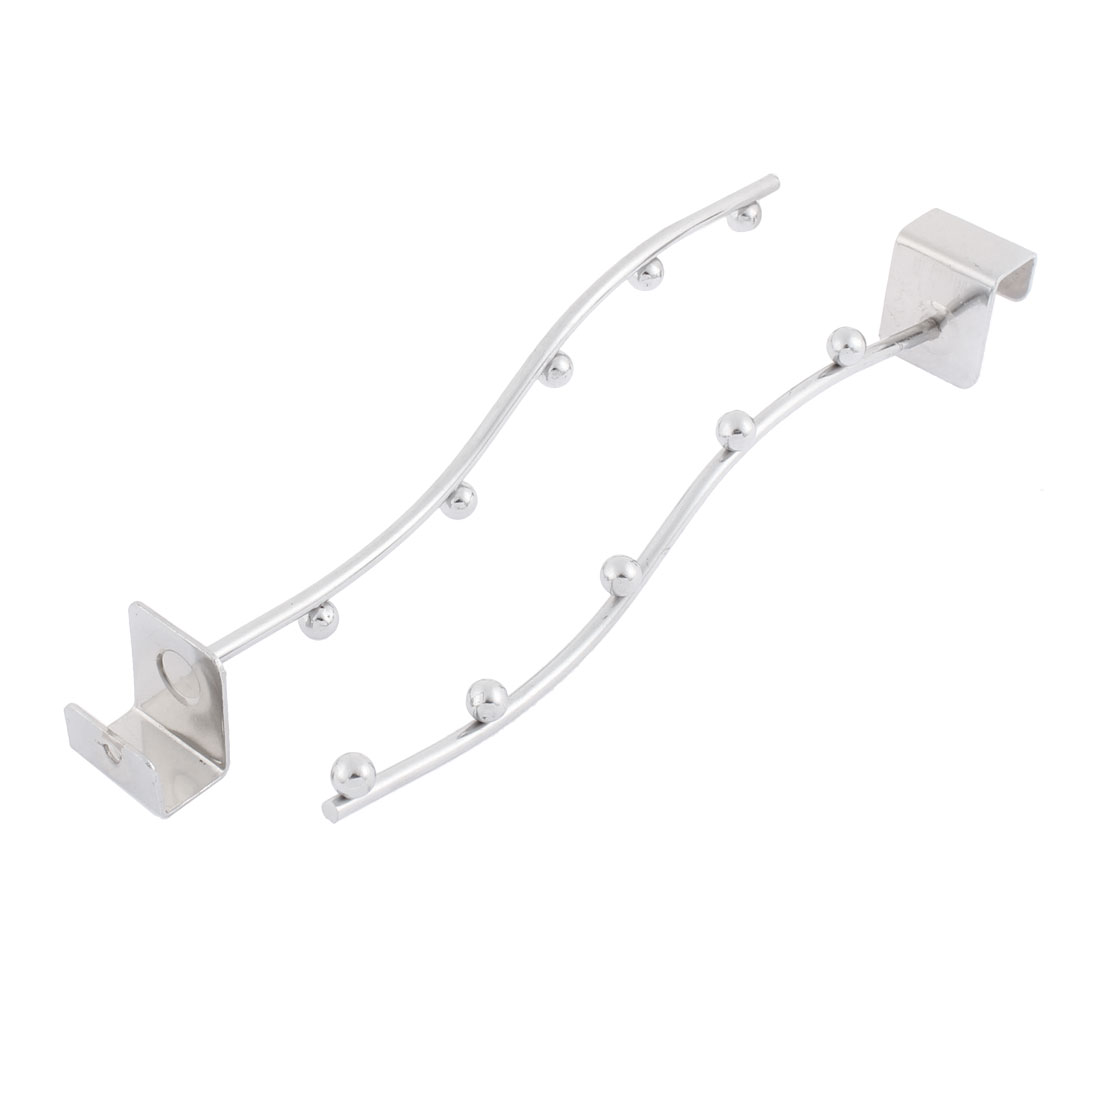 Store Garment Hanging Metal 5 Beads Wall Bracket Display Hook Silver Tone 2pcs